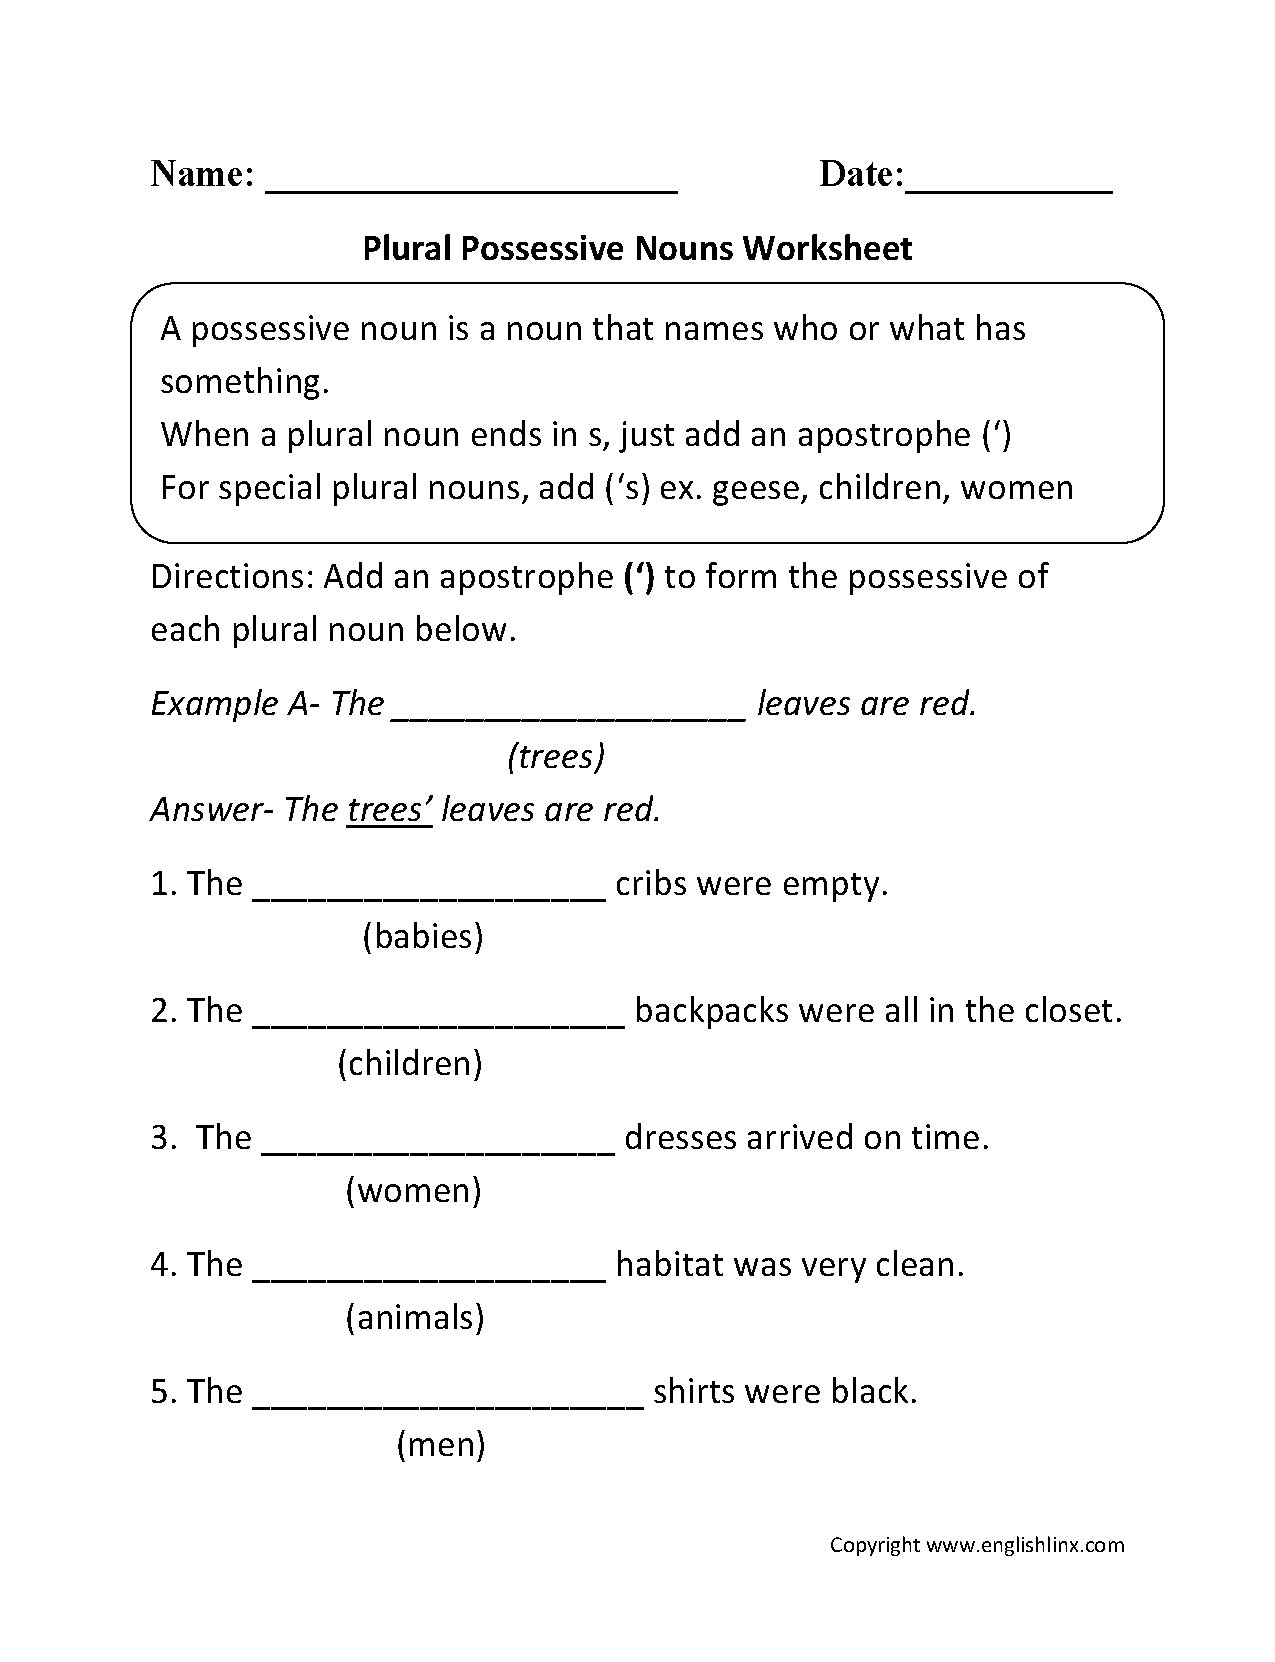 Weirdmailus  Seductive Nouns Worksheets  Possessive Nouns Worksheets With Gorgeous Possessive Nouns Worksheets With Cool Vsepr Practice Worksheet Also Exponent Worksheet Pdf In Addition Wrap Worksheets And Capital Gains Worksheet  As Well As Free Halloween Math Worksheets Additionally Cranial Nerves Worksheet From Englishlinxcom With Weirdmailus  Gorgeous Nouns Worksheets  Possessive Nouns Worksheets With Cool Possessive Nouns Worksheets And Seductive Vsepr Practice Worksheet Also Exponent Worksheet Pdf In Addition Wrap Worksheets From Englishlinxcom